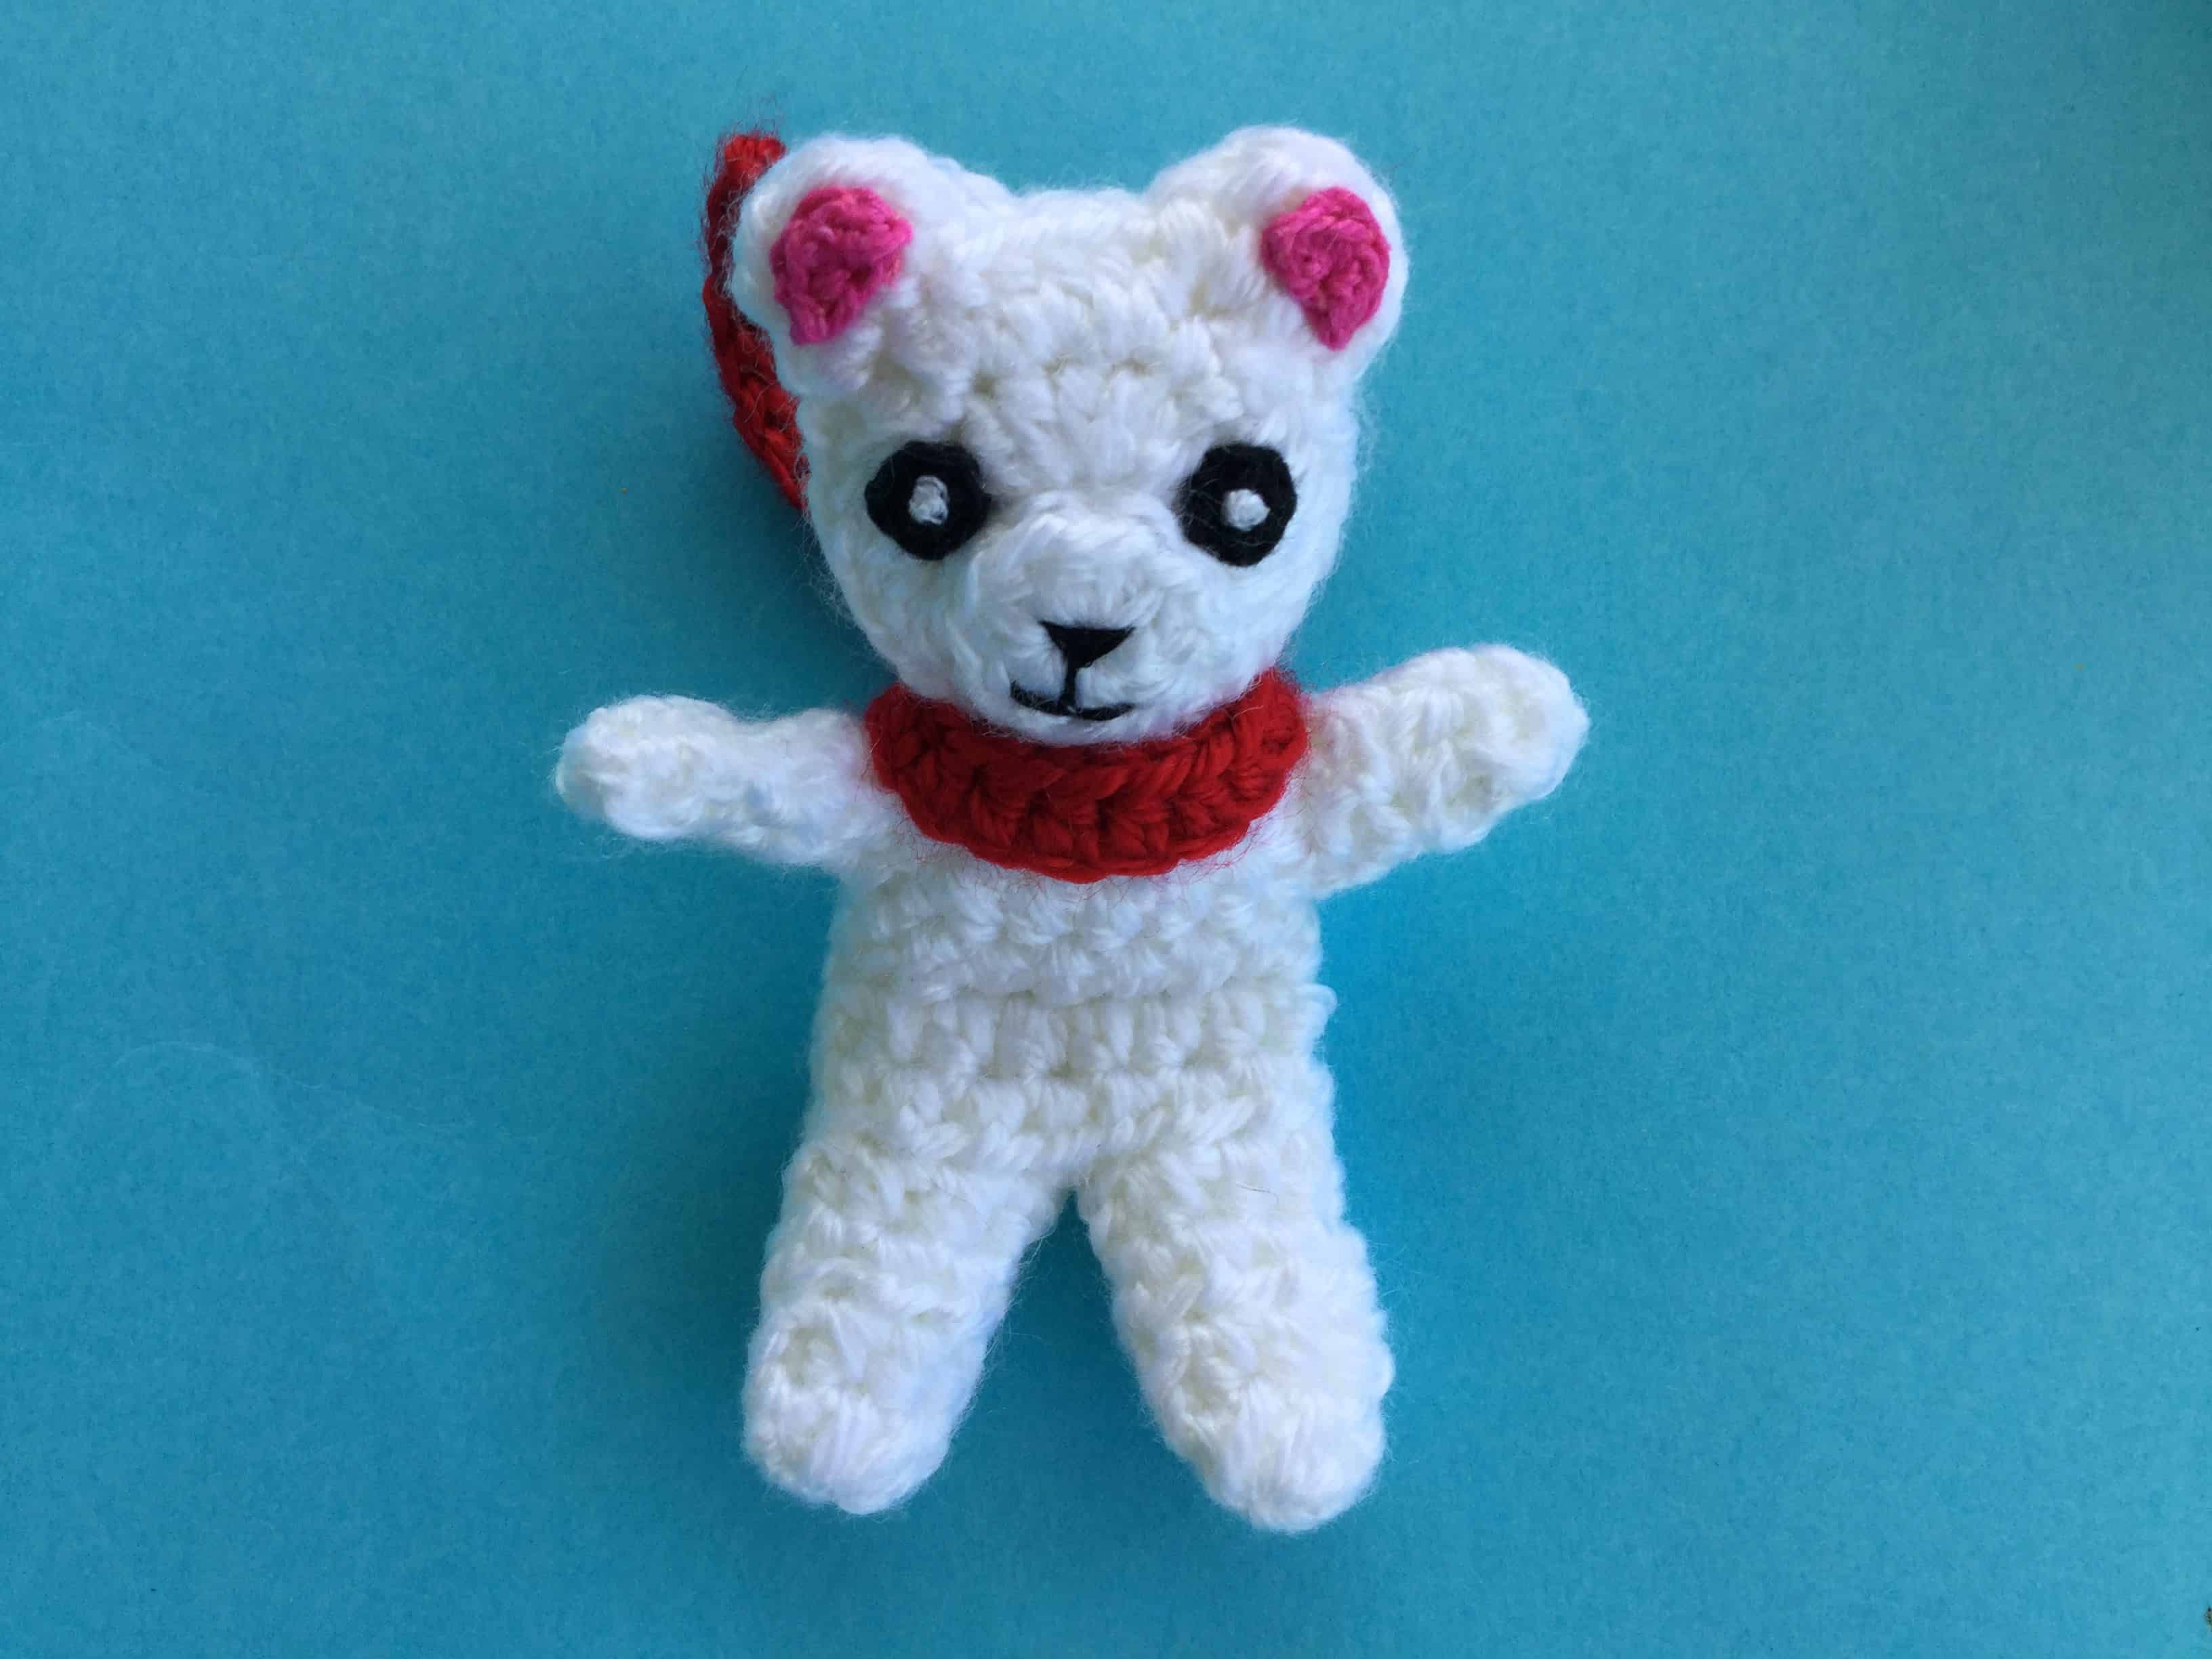 Finished crochet teddy for plane mobile with scarf landscape